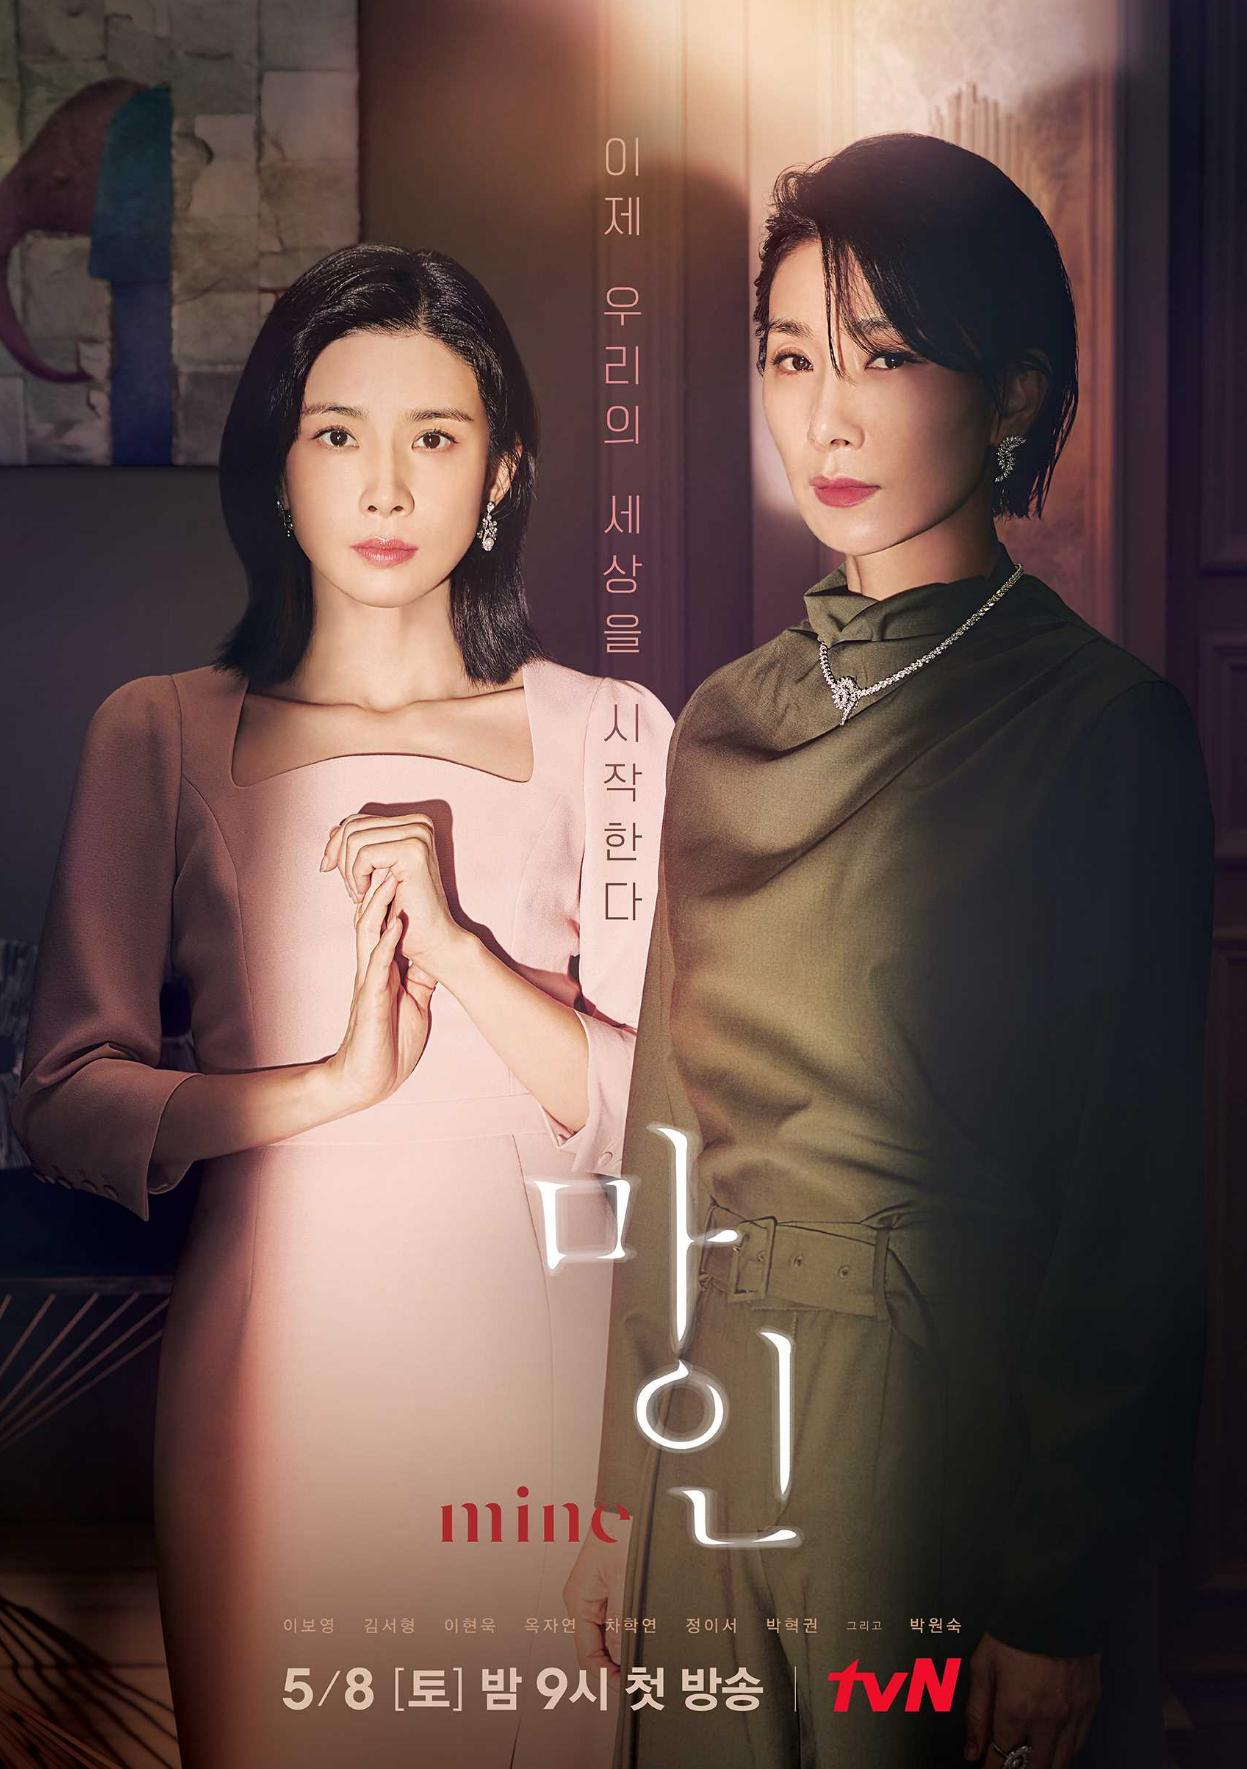 Encaged in a gold-clad life of secrets and lies, two women in a conglomerate family seek to topple all that stands in their way of finding true joy.